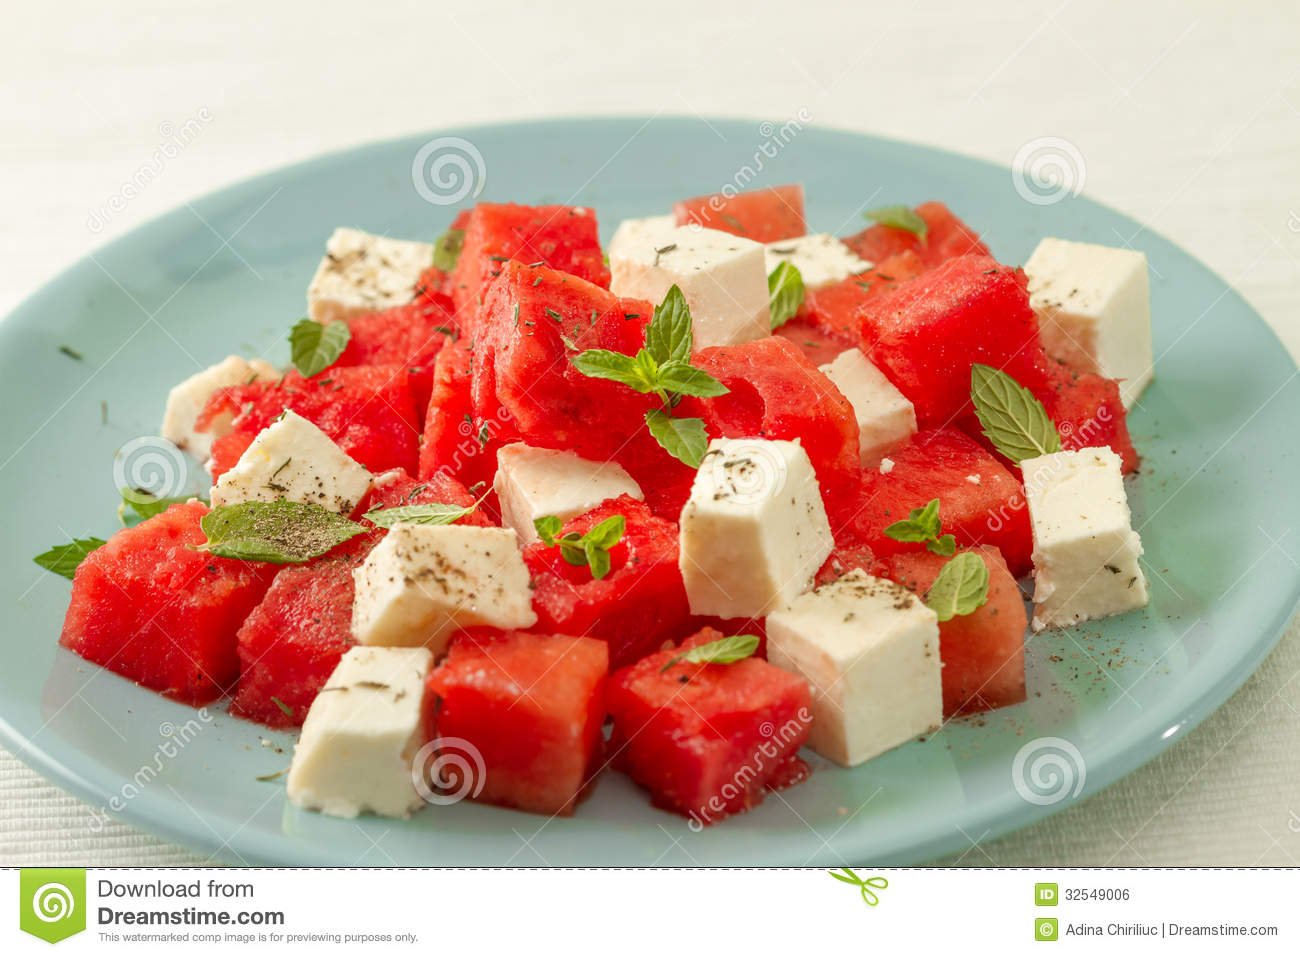 Salad With Watermelon And Feta Cheese Royalty Free Stock Image - Image ...